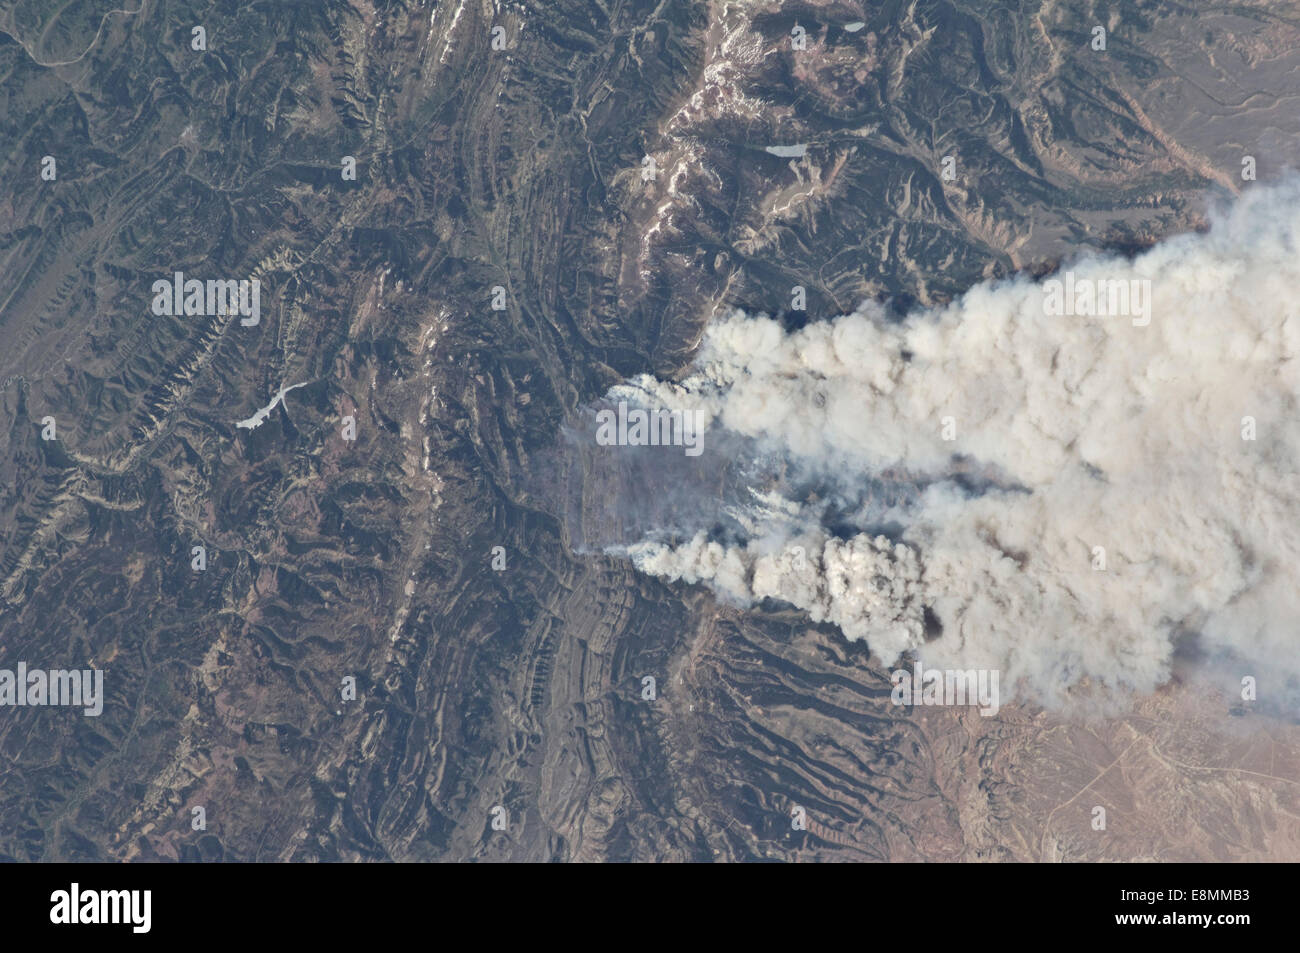 June 27, 2012 - View from space of the Fontenelle fire burning in Wyoming. - Stock Image